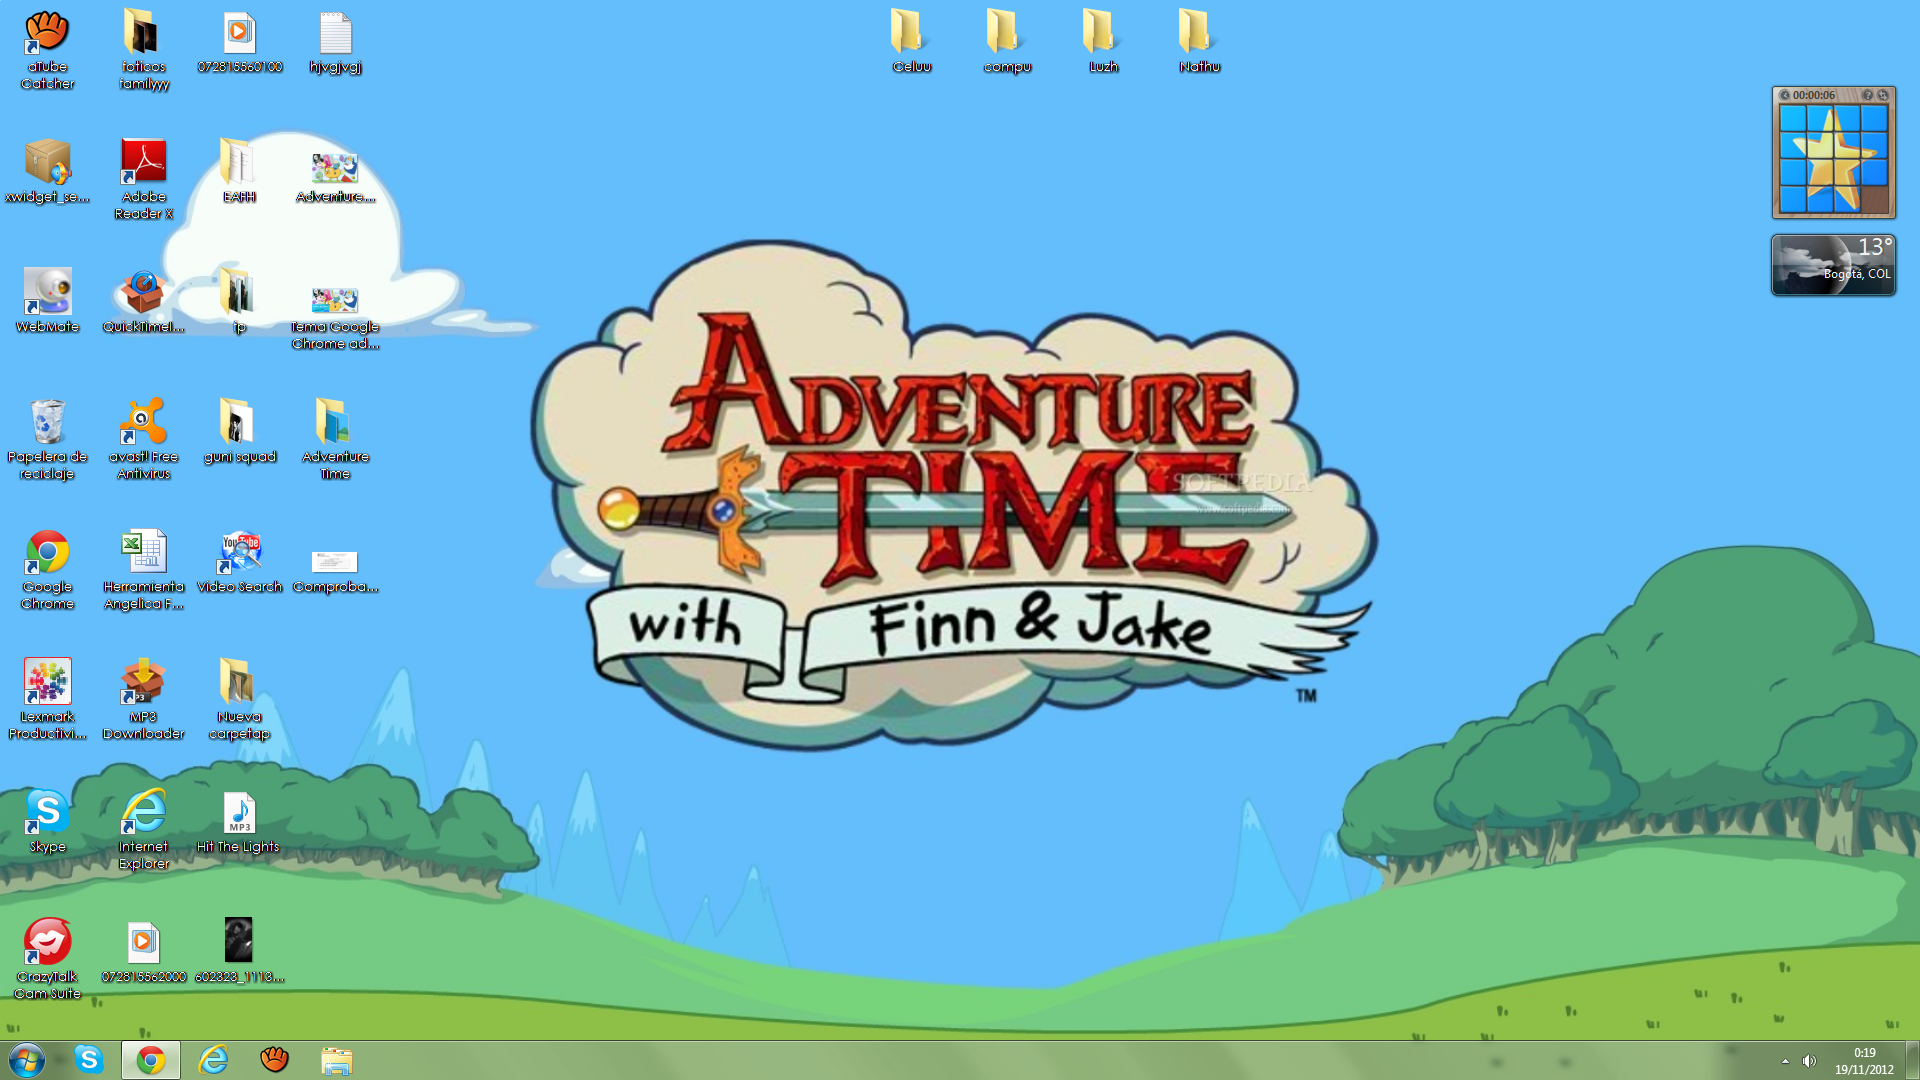 Google themes windows 7 free download -  Theme For Windows 7 Adventure Time By Dani9157